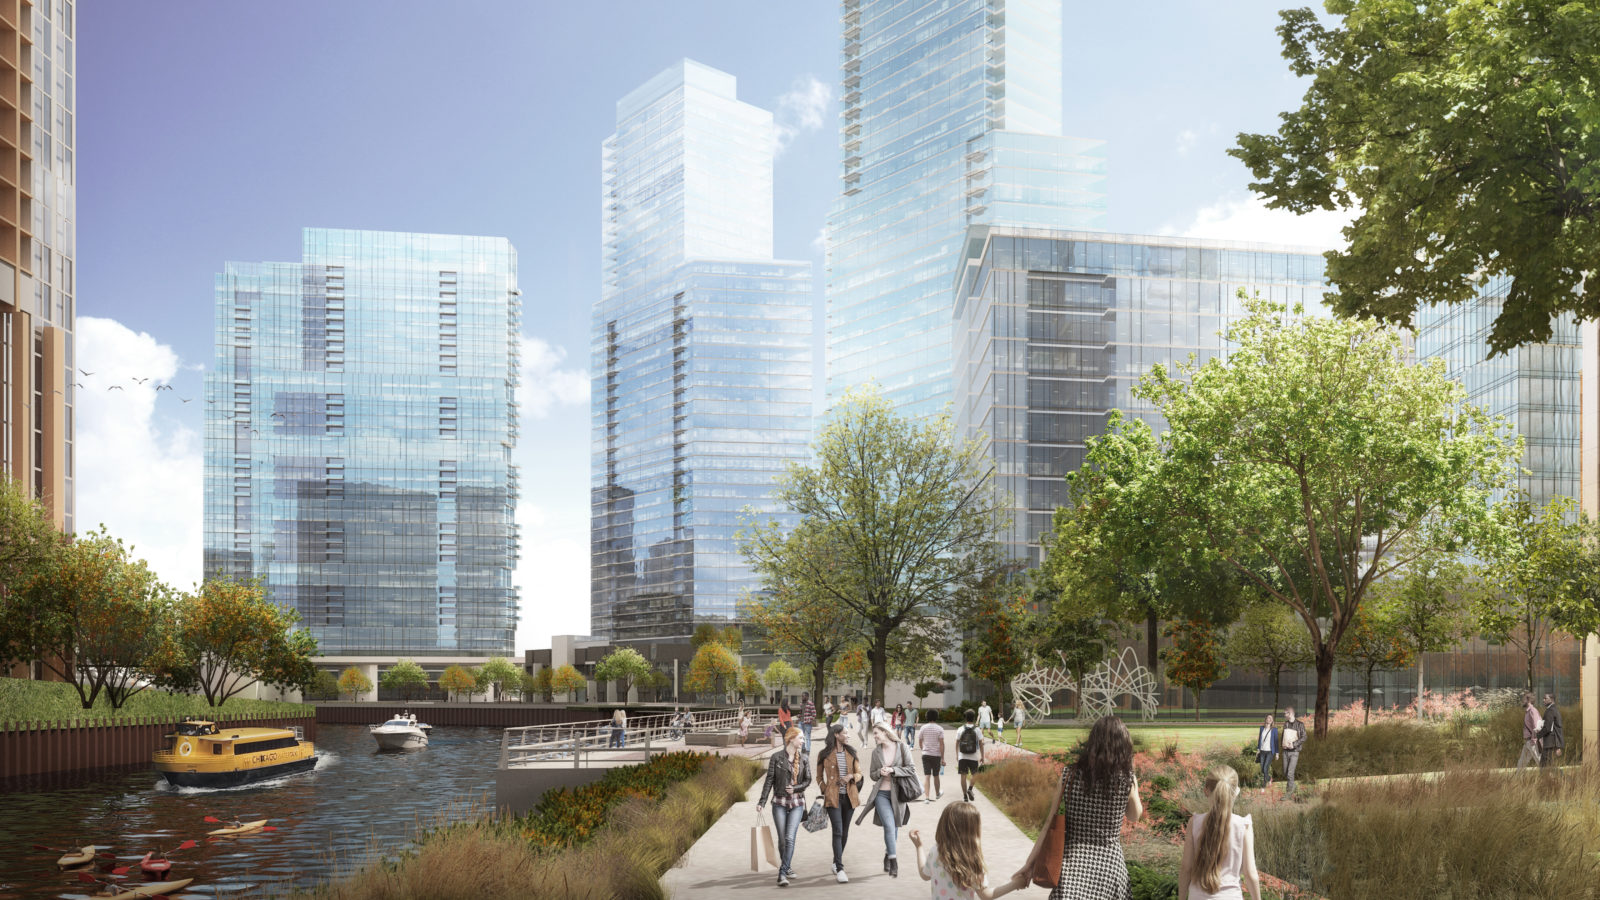 Tribune Media looks to sell massive 'River District' development site